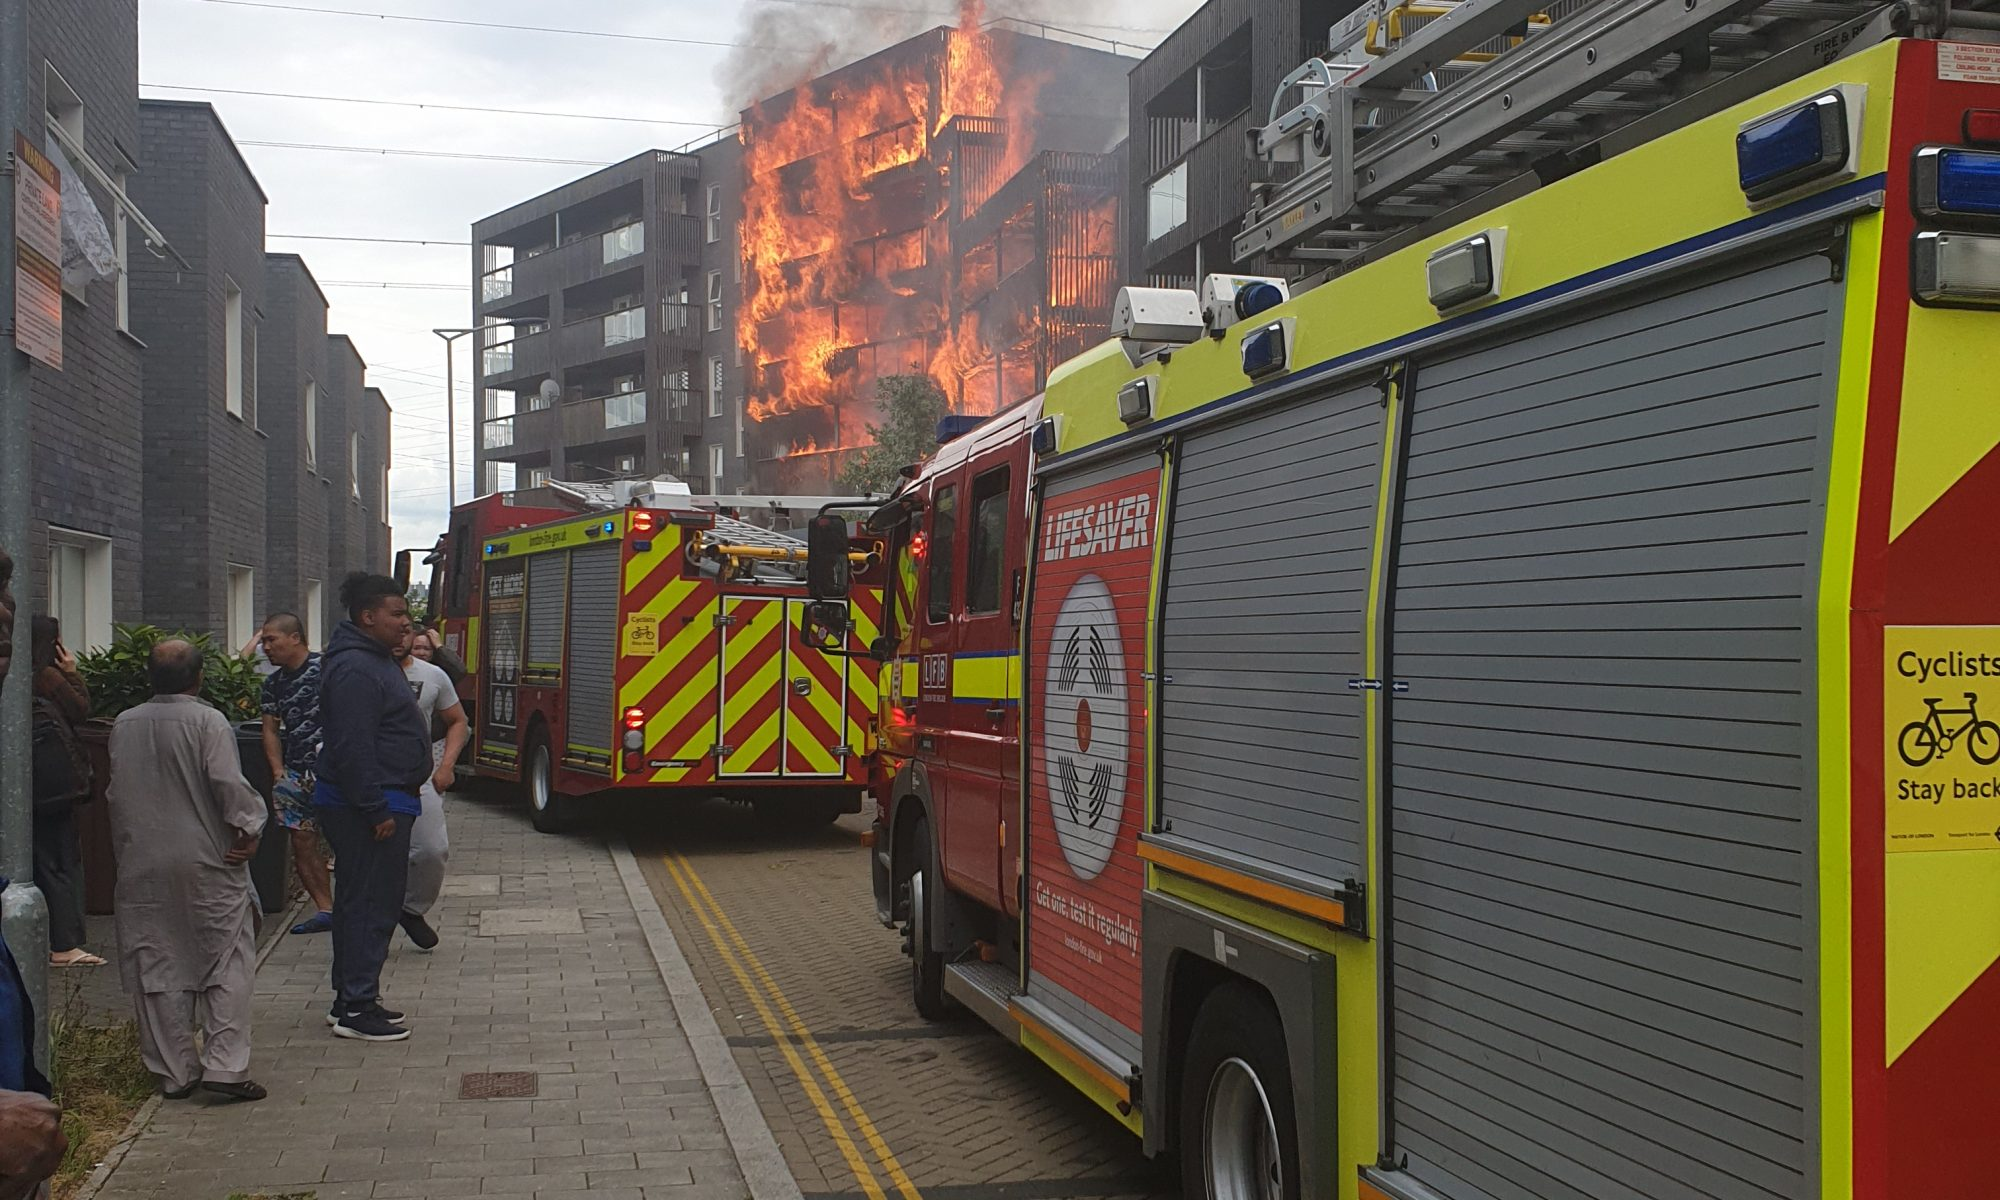 London Fire brigade attend the fire: picture by Laimonas Vazgys